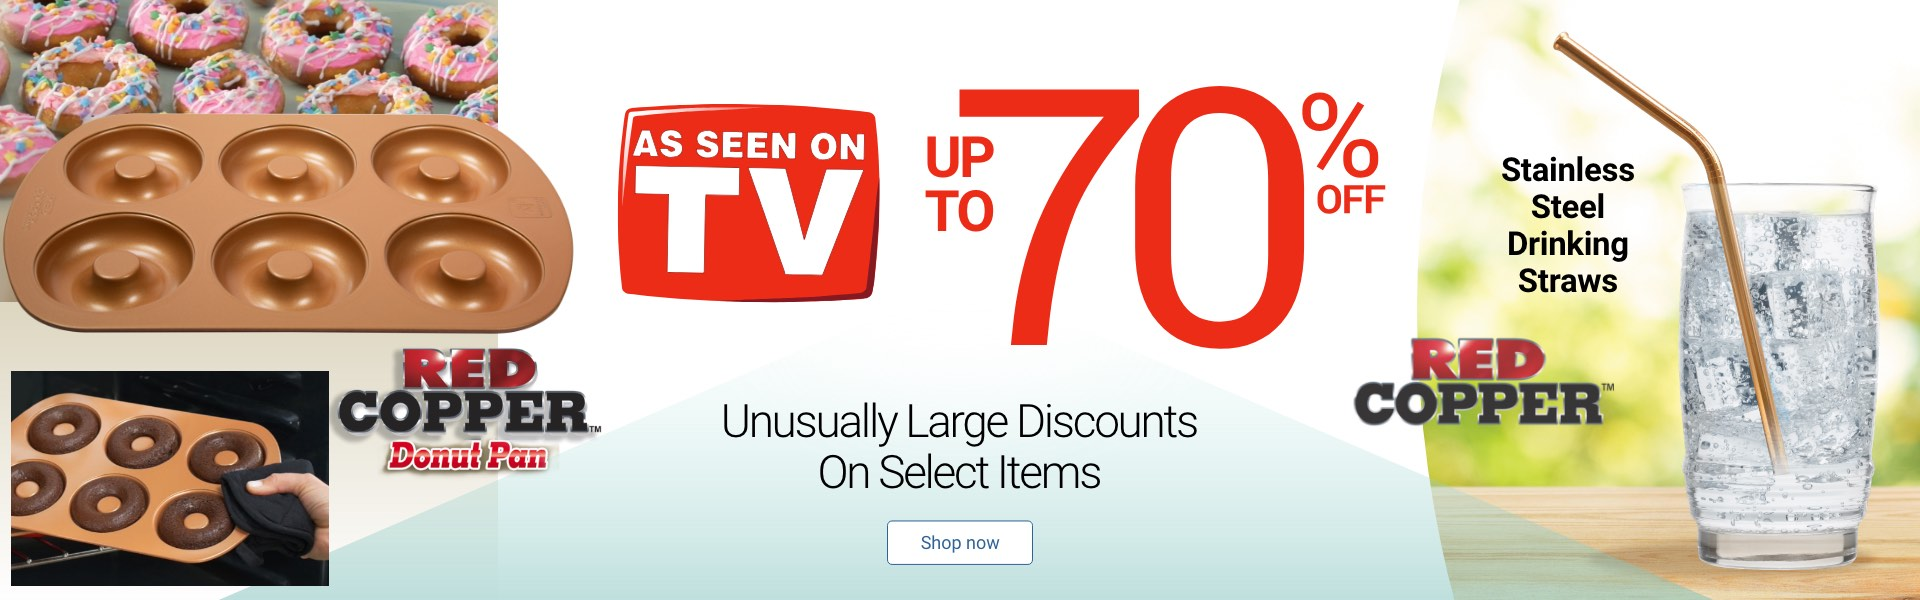 ASOTV Big Blowout Sale Up To 70% Off Shop now